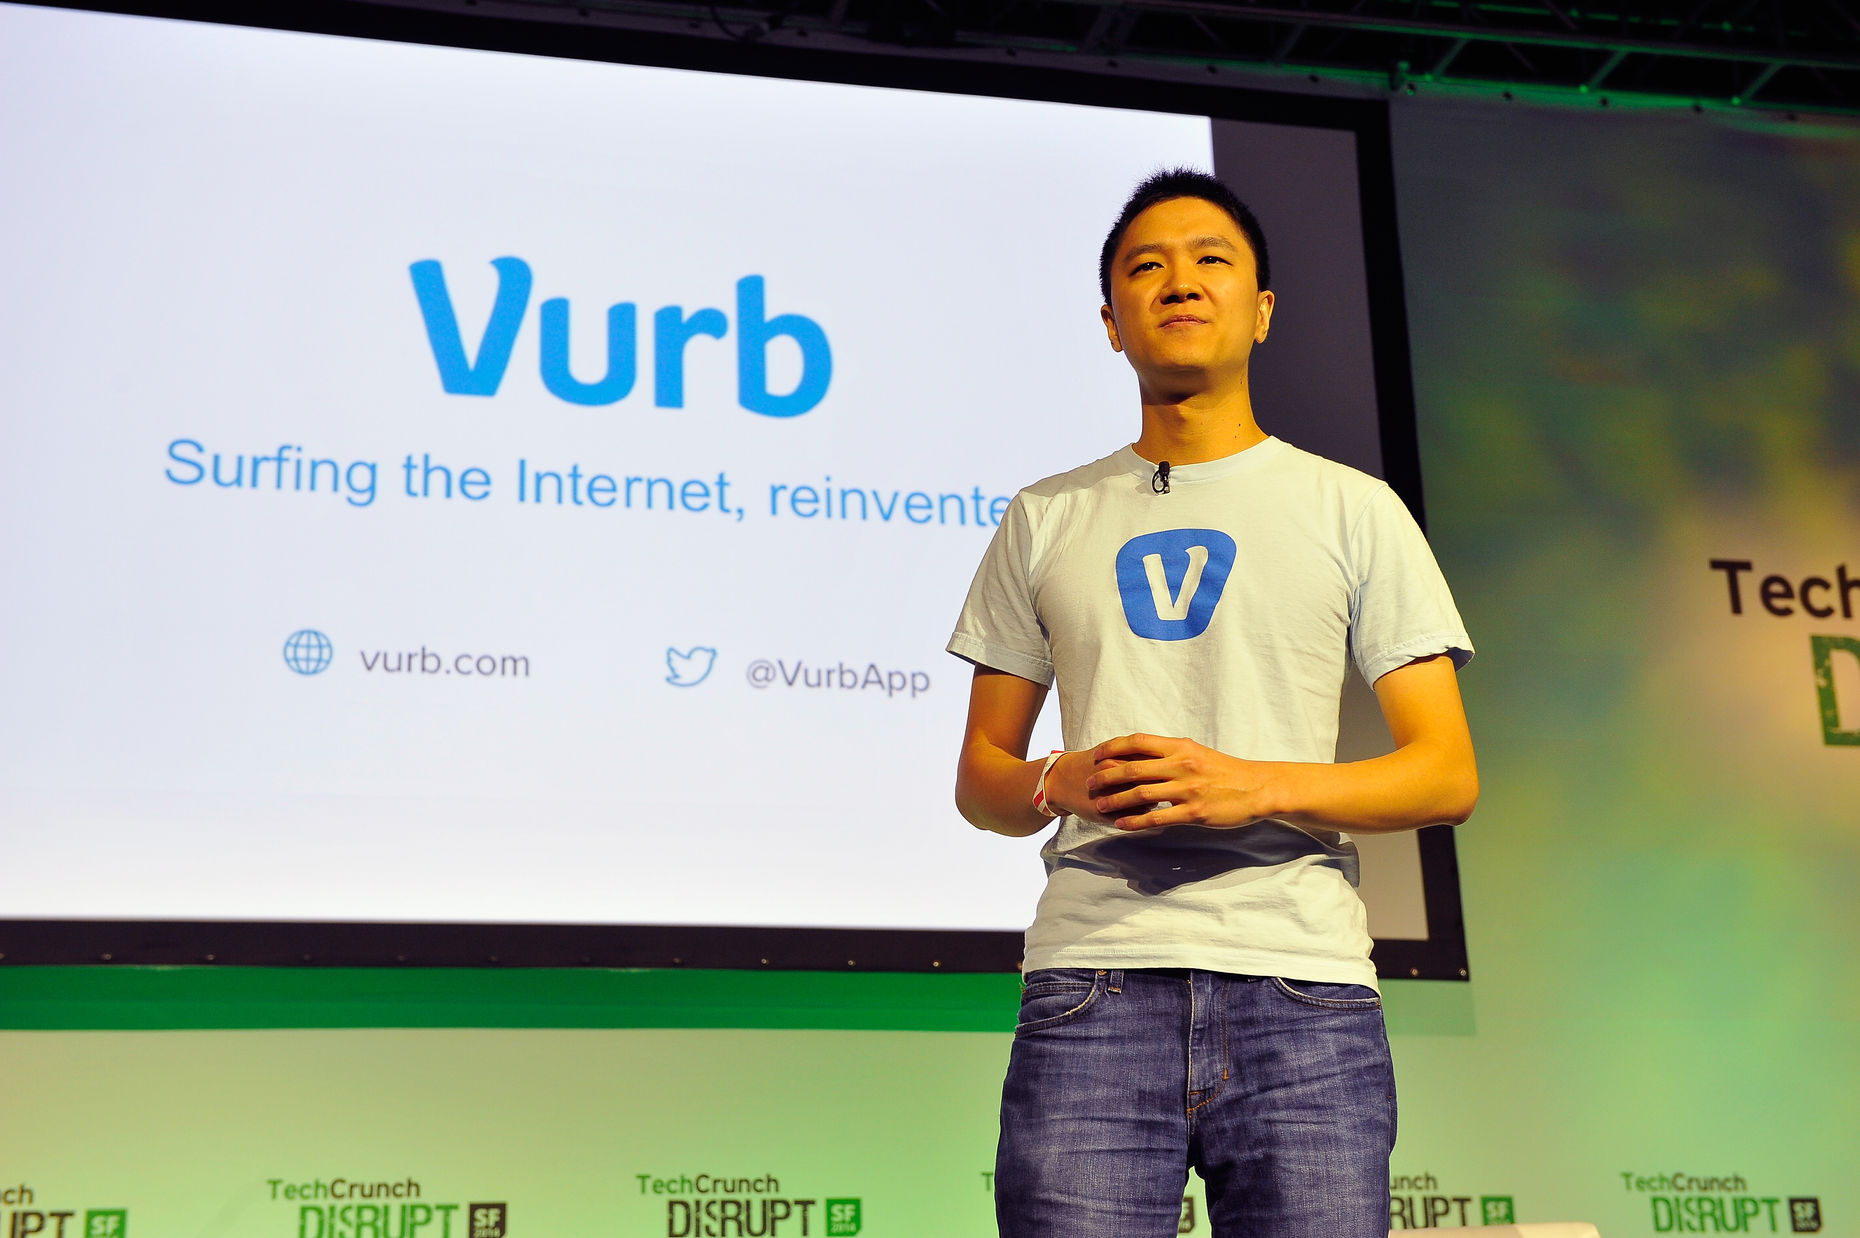 Vurb founder Bobby Lo at TechCrunch Disrupt. Photo by TechCrunch.